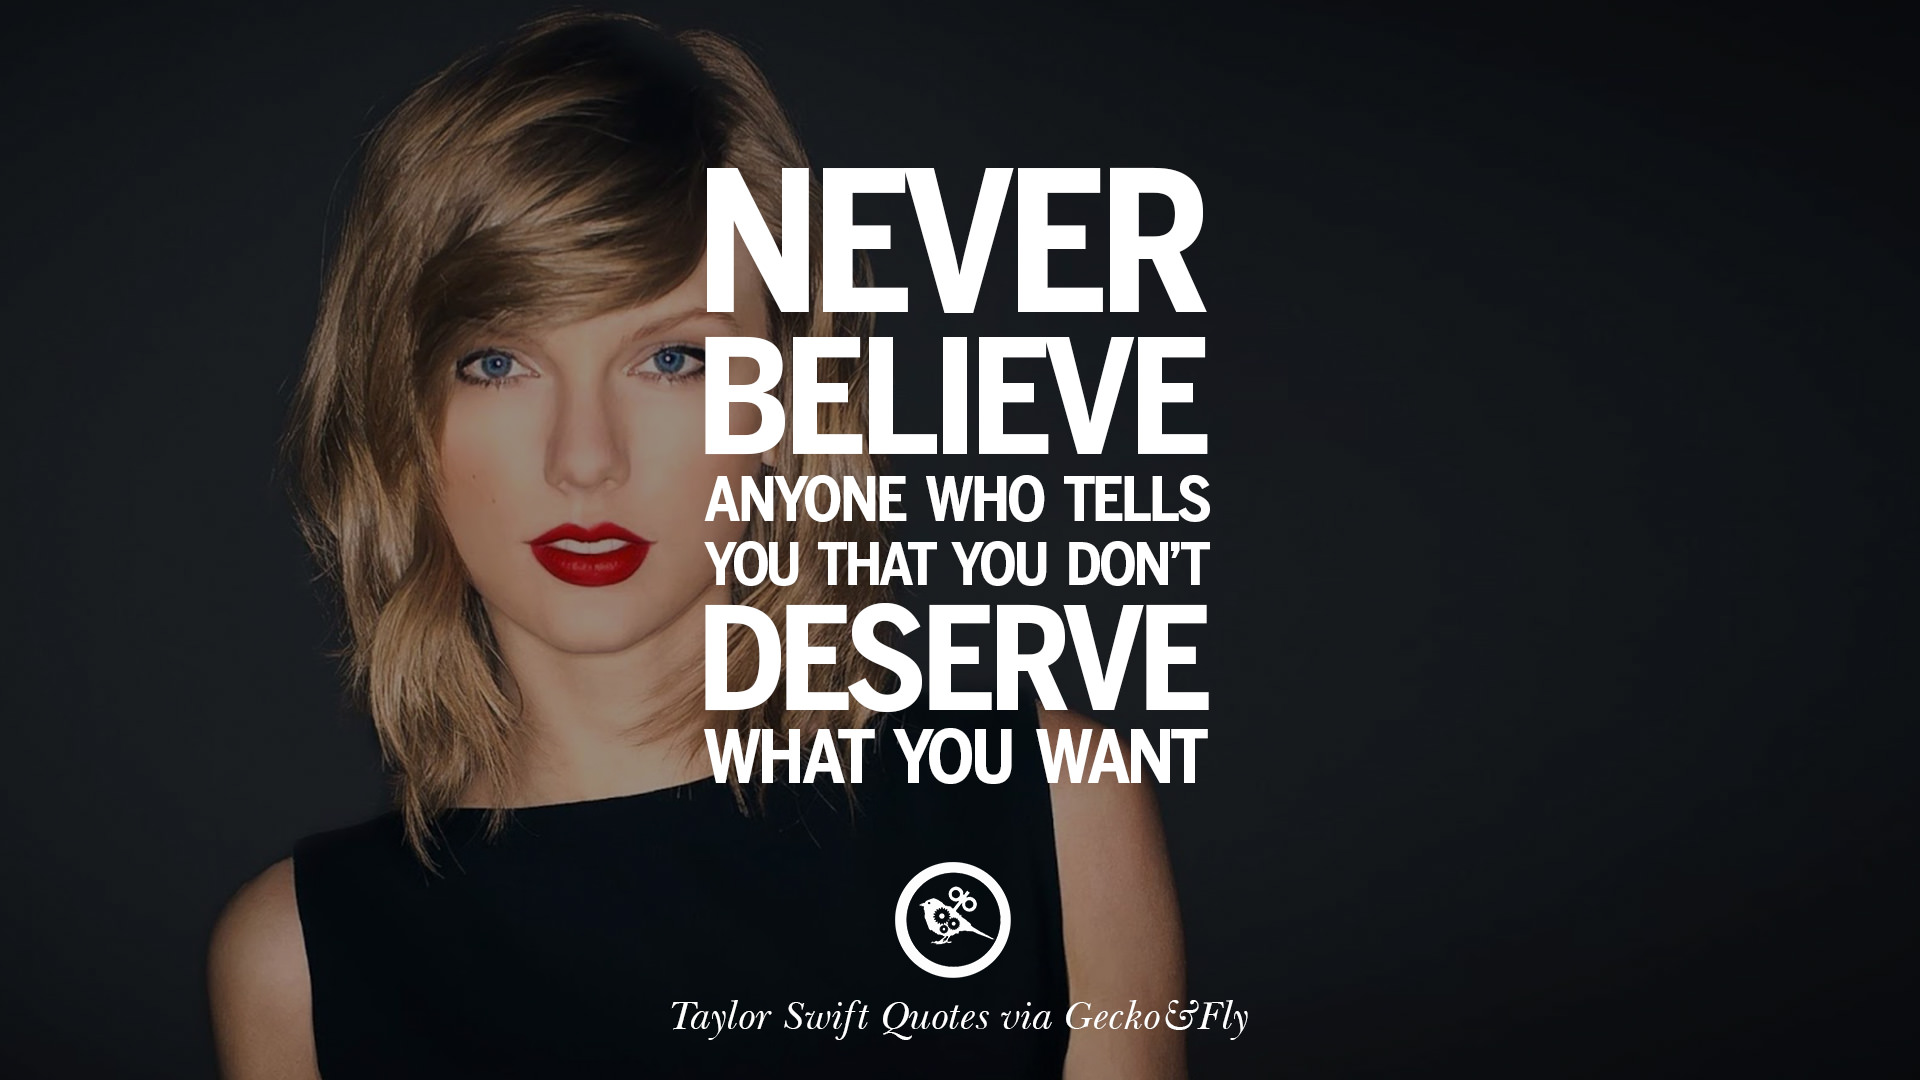 You Never People You Say Will Tha Do Want They Want Good Will Do Better Always